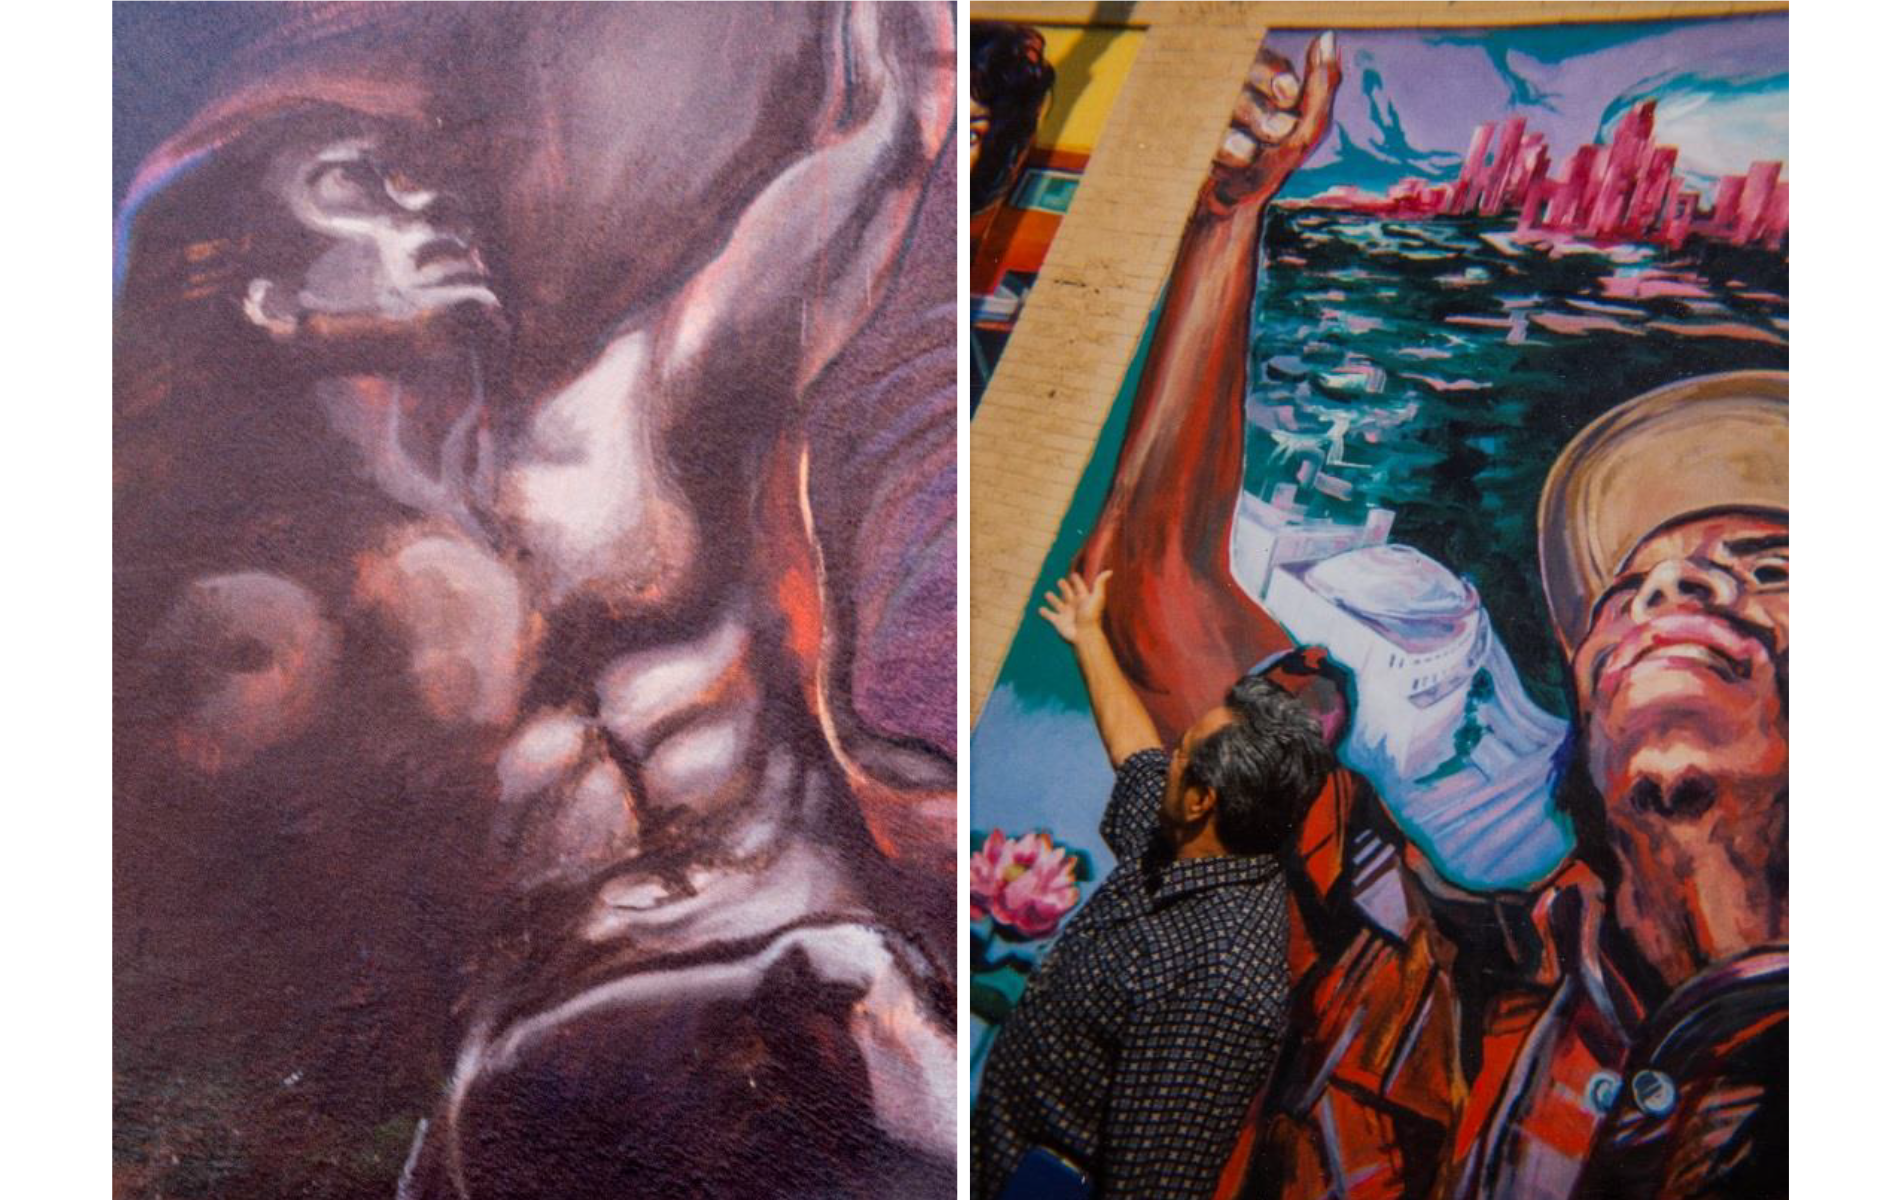 <h1>Mural details, <em>Resurrection of the Green Planet</em> (left) and <em>El Nuevo Mundo: Homage to the Worker</em> (right)</h1>